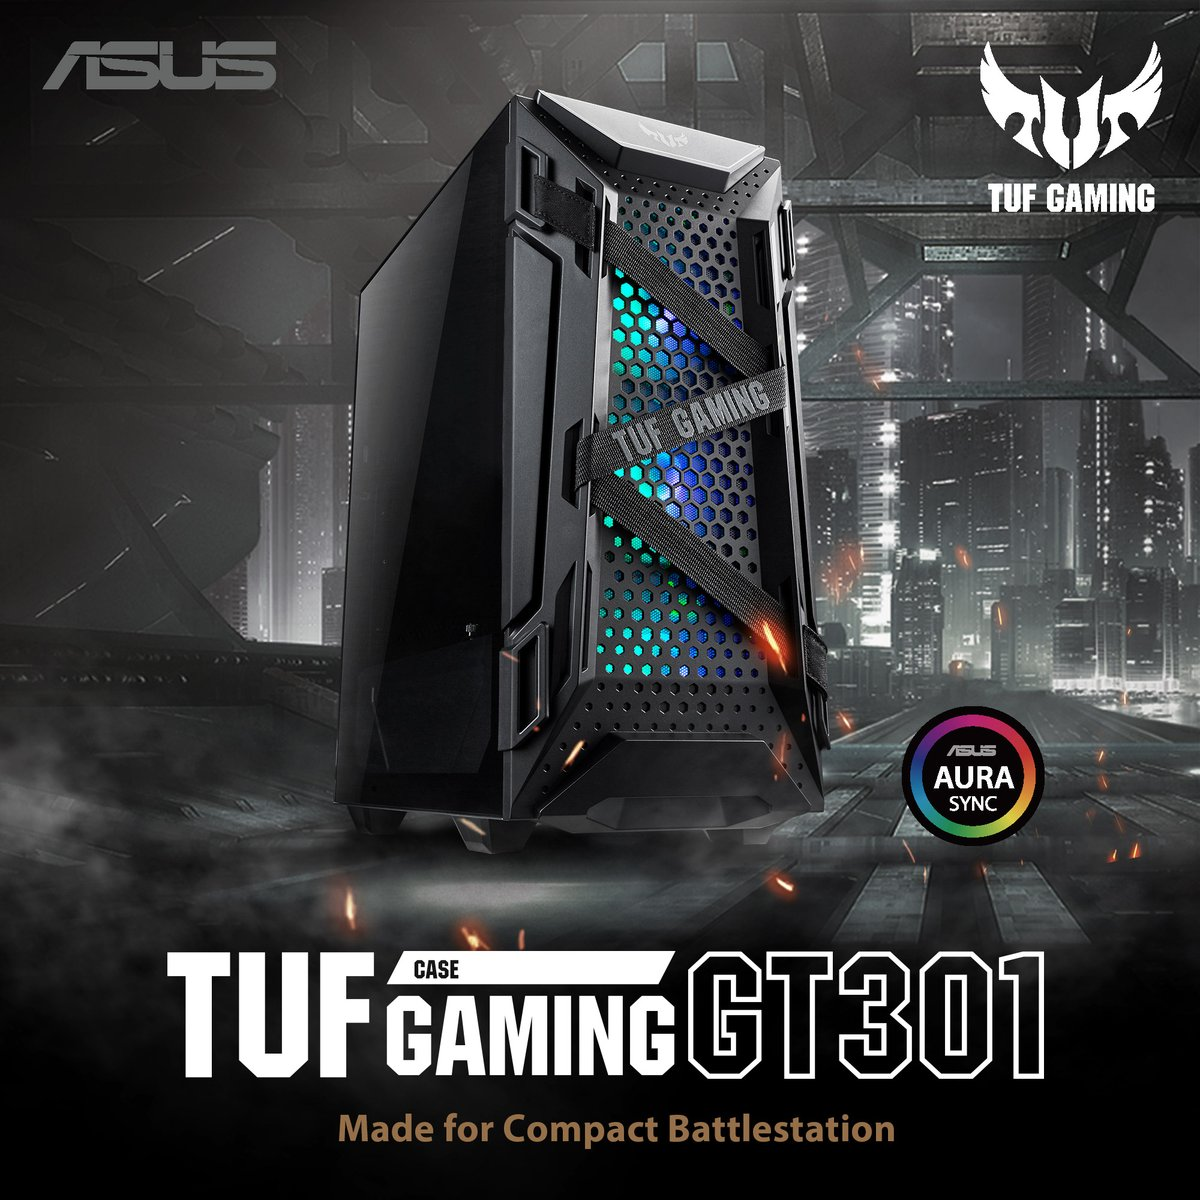 A new compact battle carrier is ready for deployment!  The all-new TUF Gaming GT301 the perfect chassis to complete your new gaming system. 🆕 Optimized for cooling and compatibility, it doesn't compromise on your needed features.  Available in stores this July 2020. https://t.co/1YkibWNm6L